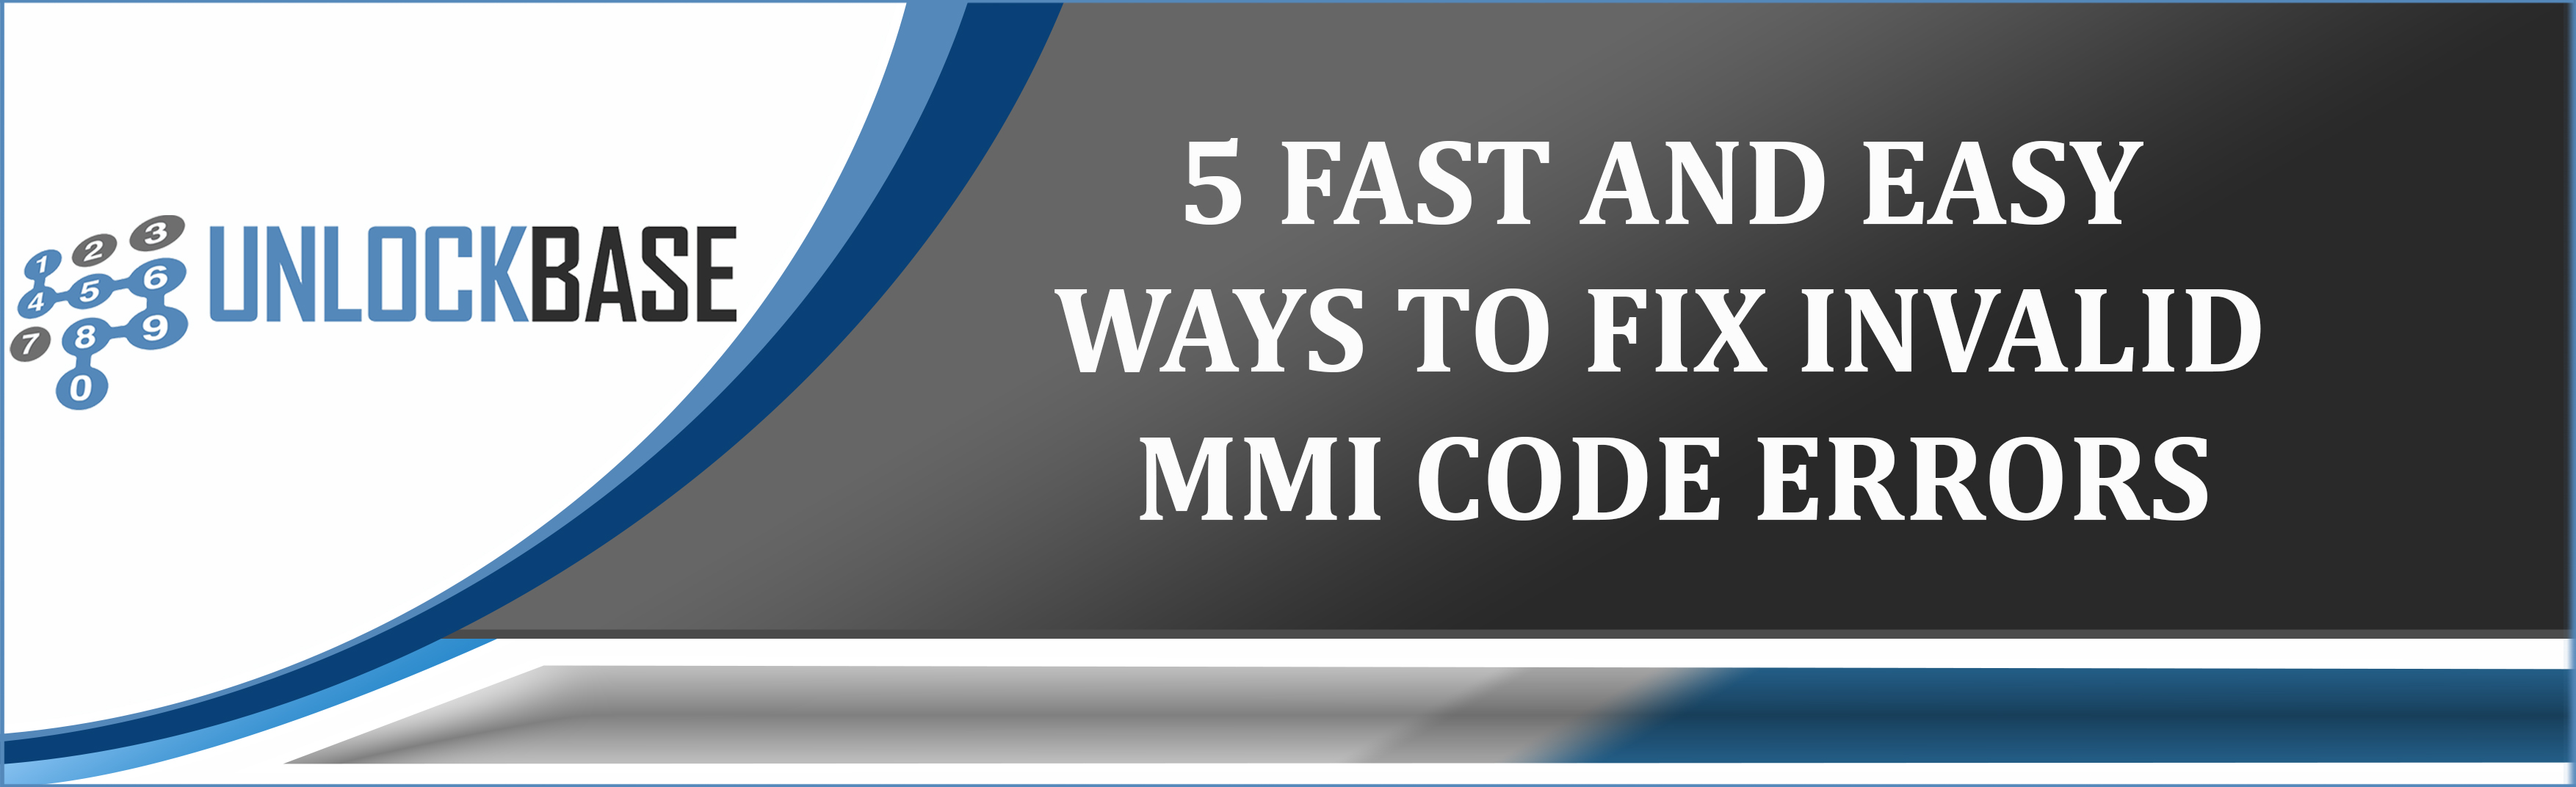 Connection problems or invalid MMI code